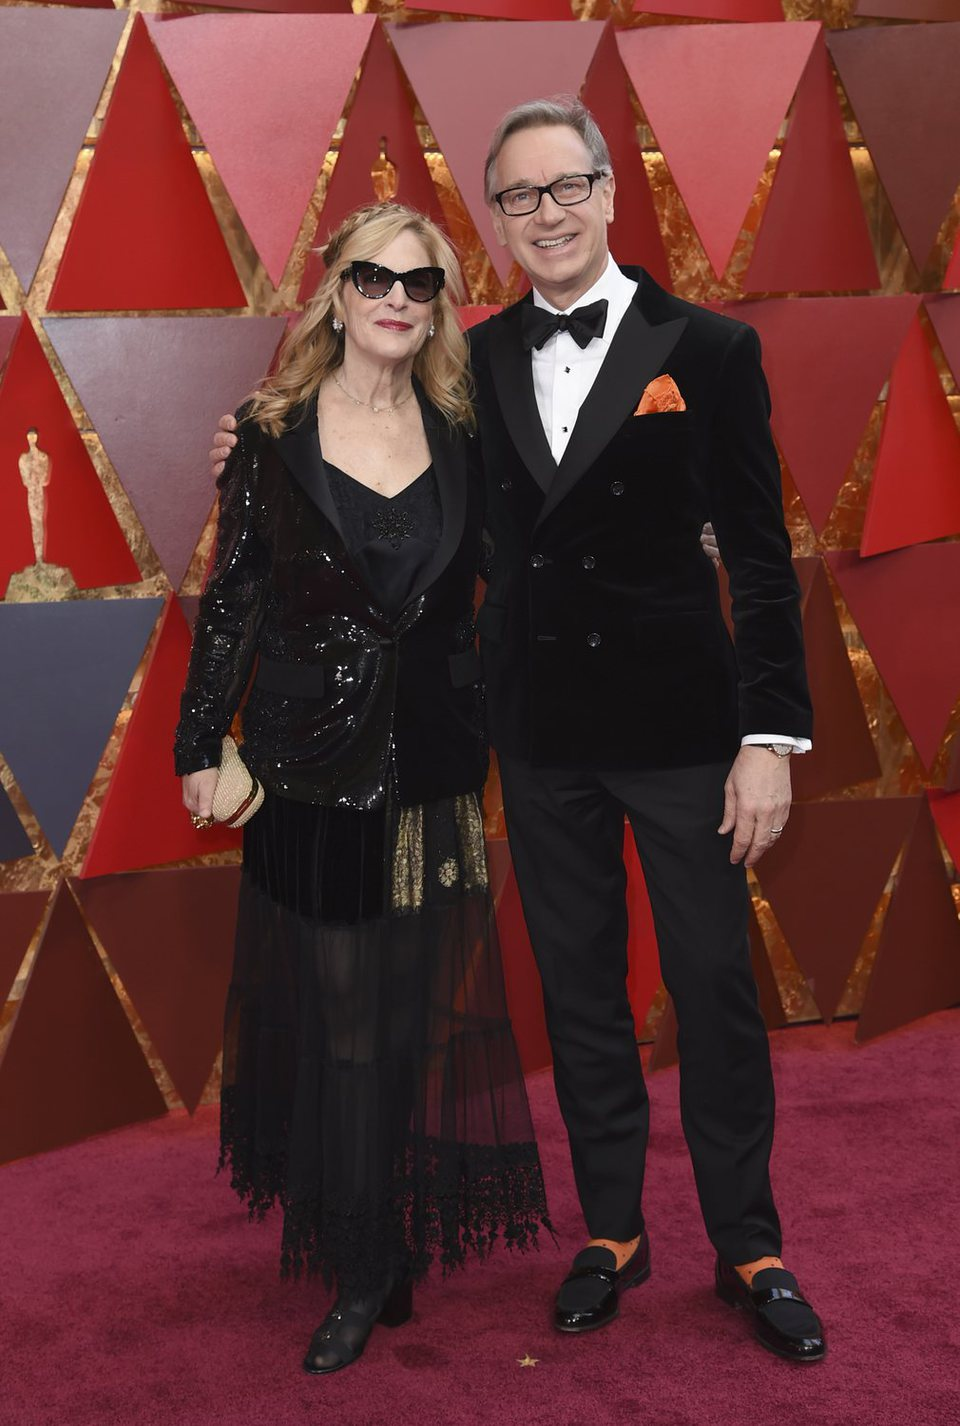 Paul Feig and his wife at the red carpet of the Oscars 2018